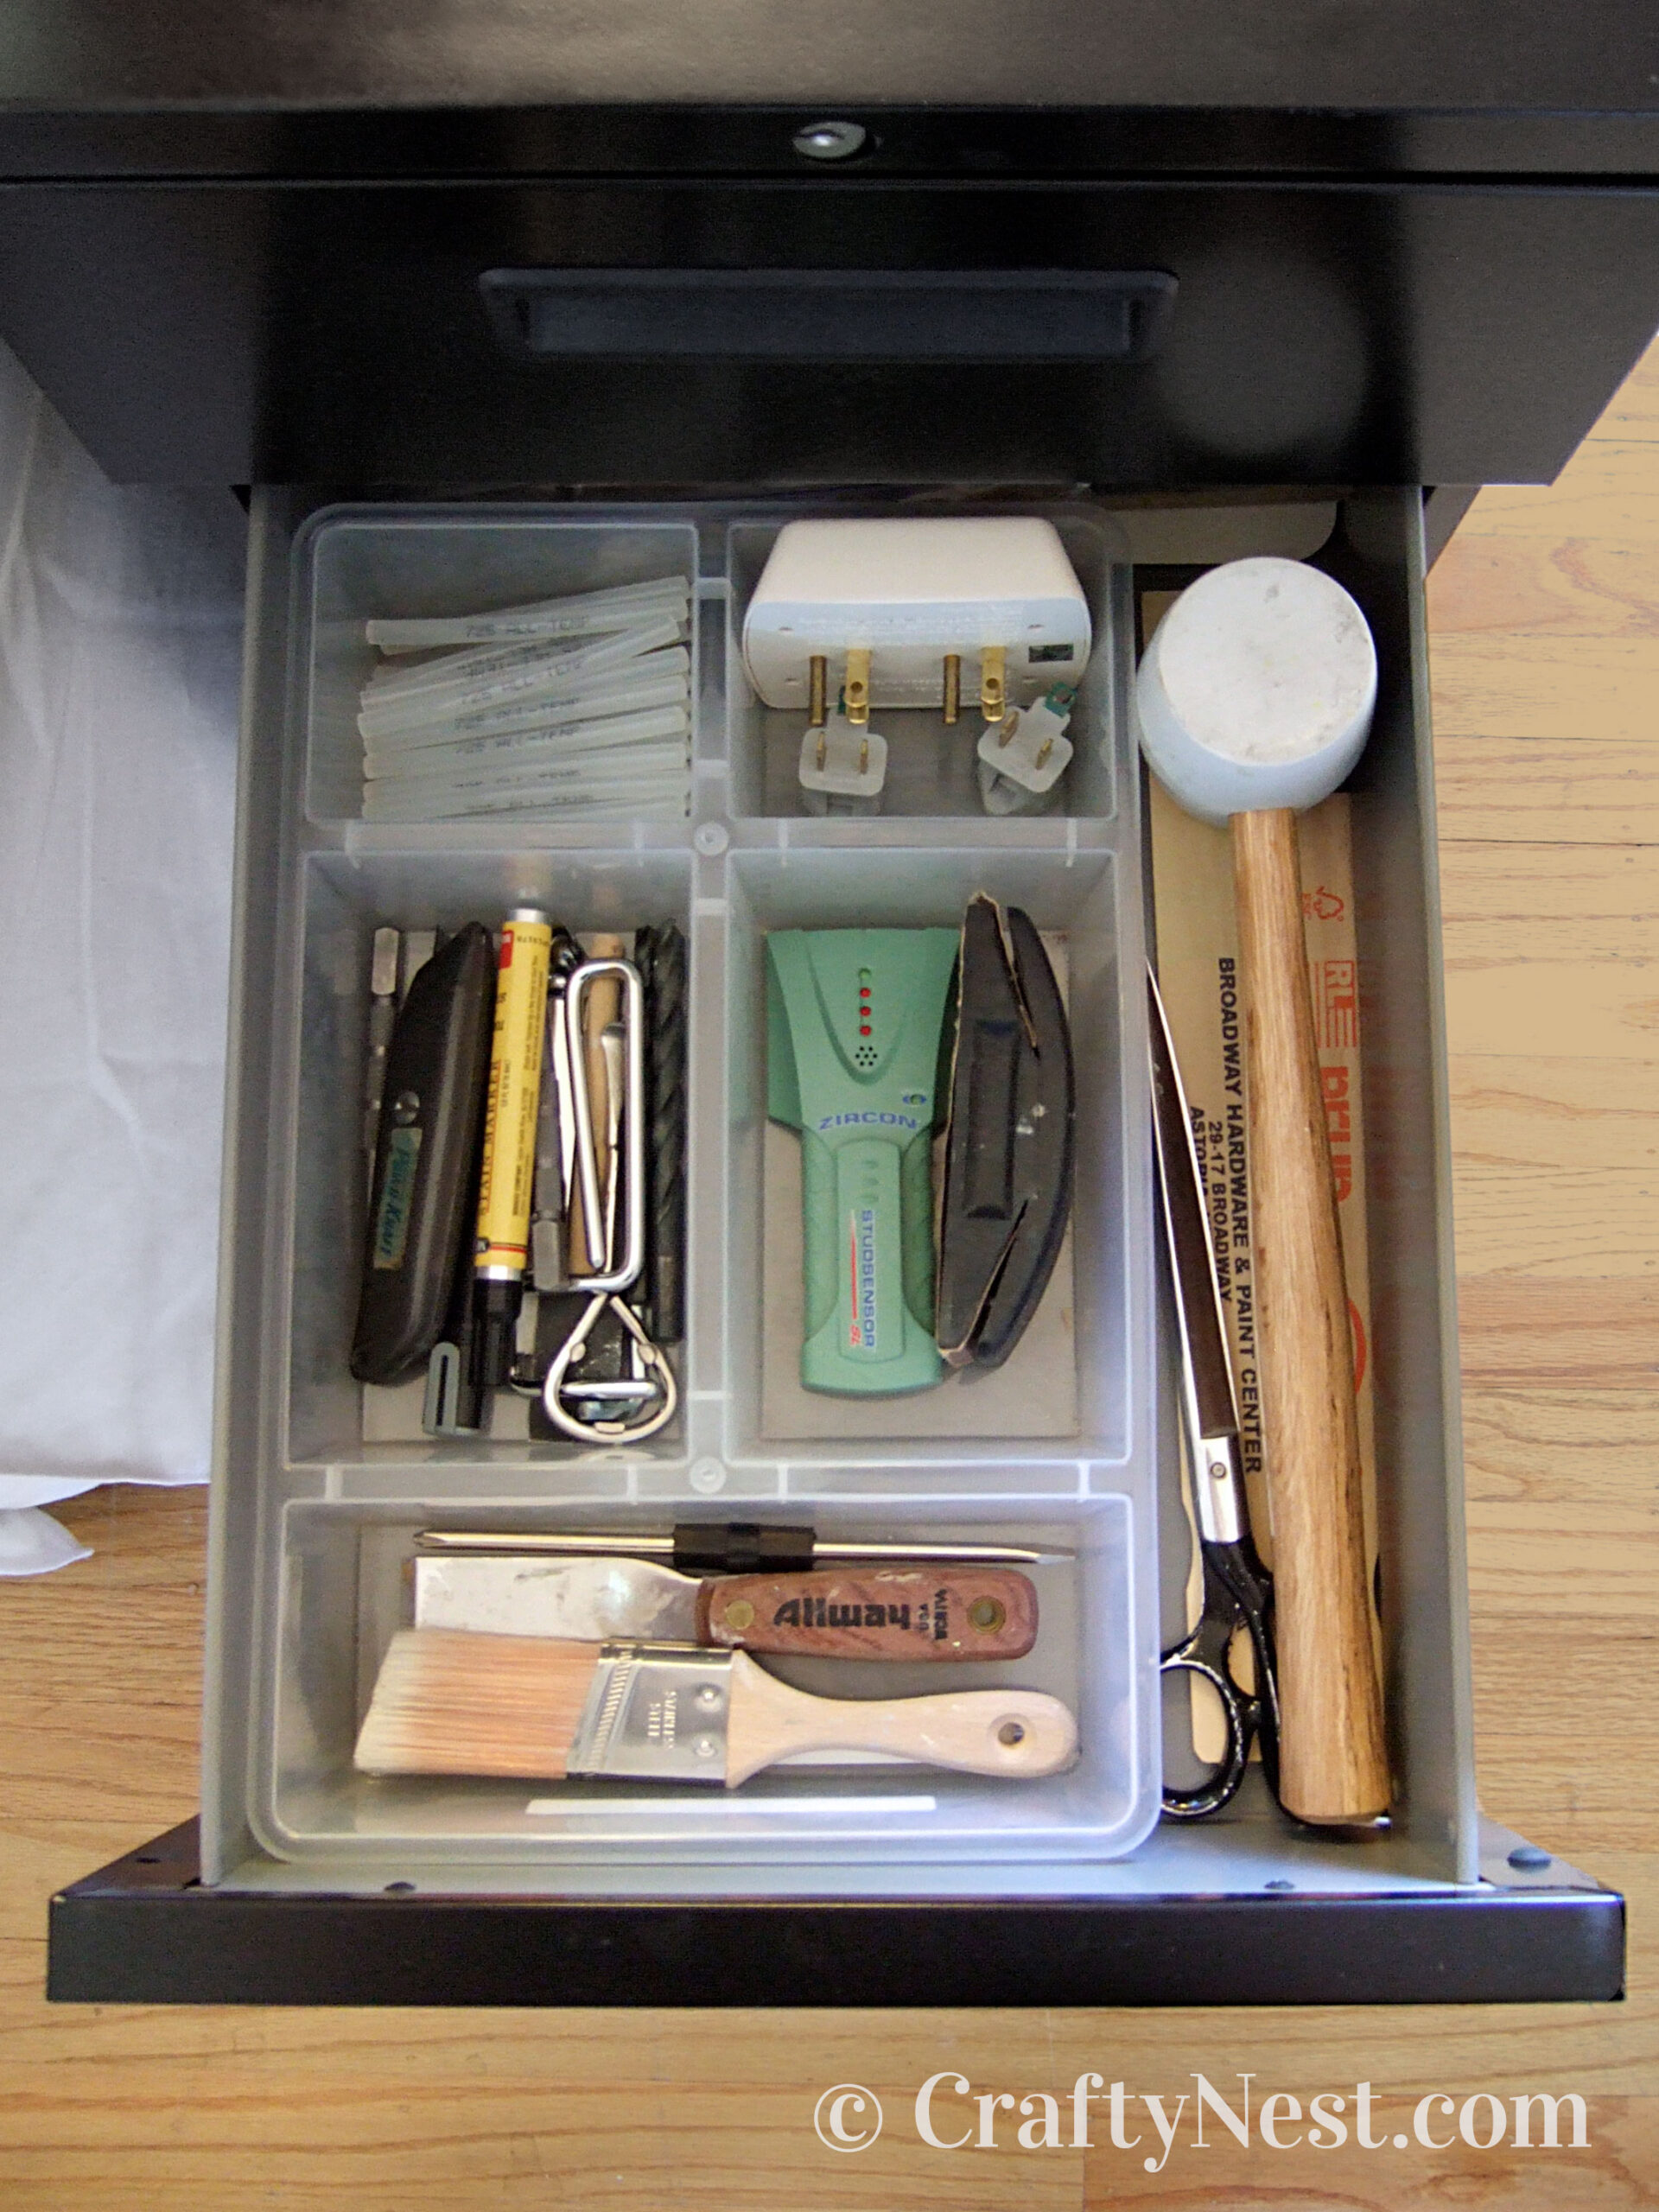 Onpen file cabinet drawer with tools organized inside, photo